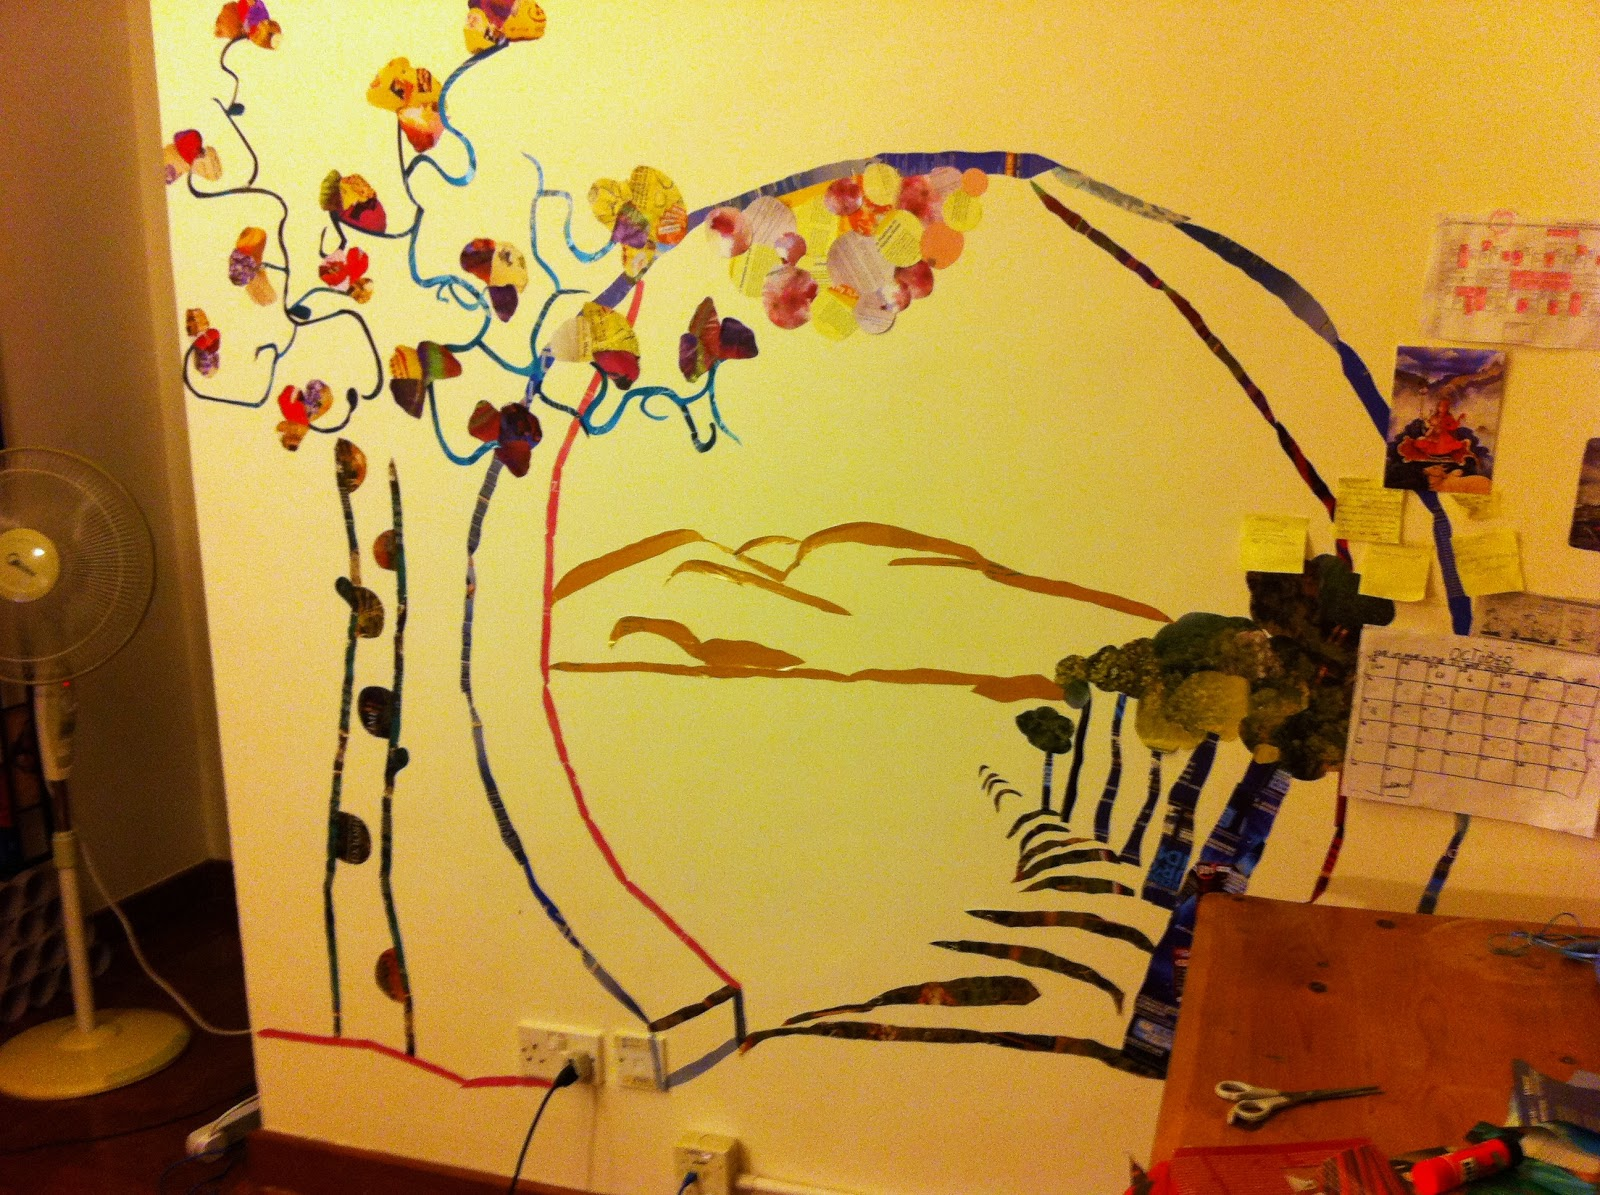 IDEA Lee: How to Decorate with Recycled Materials Part 1: Murals